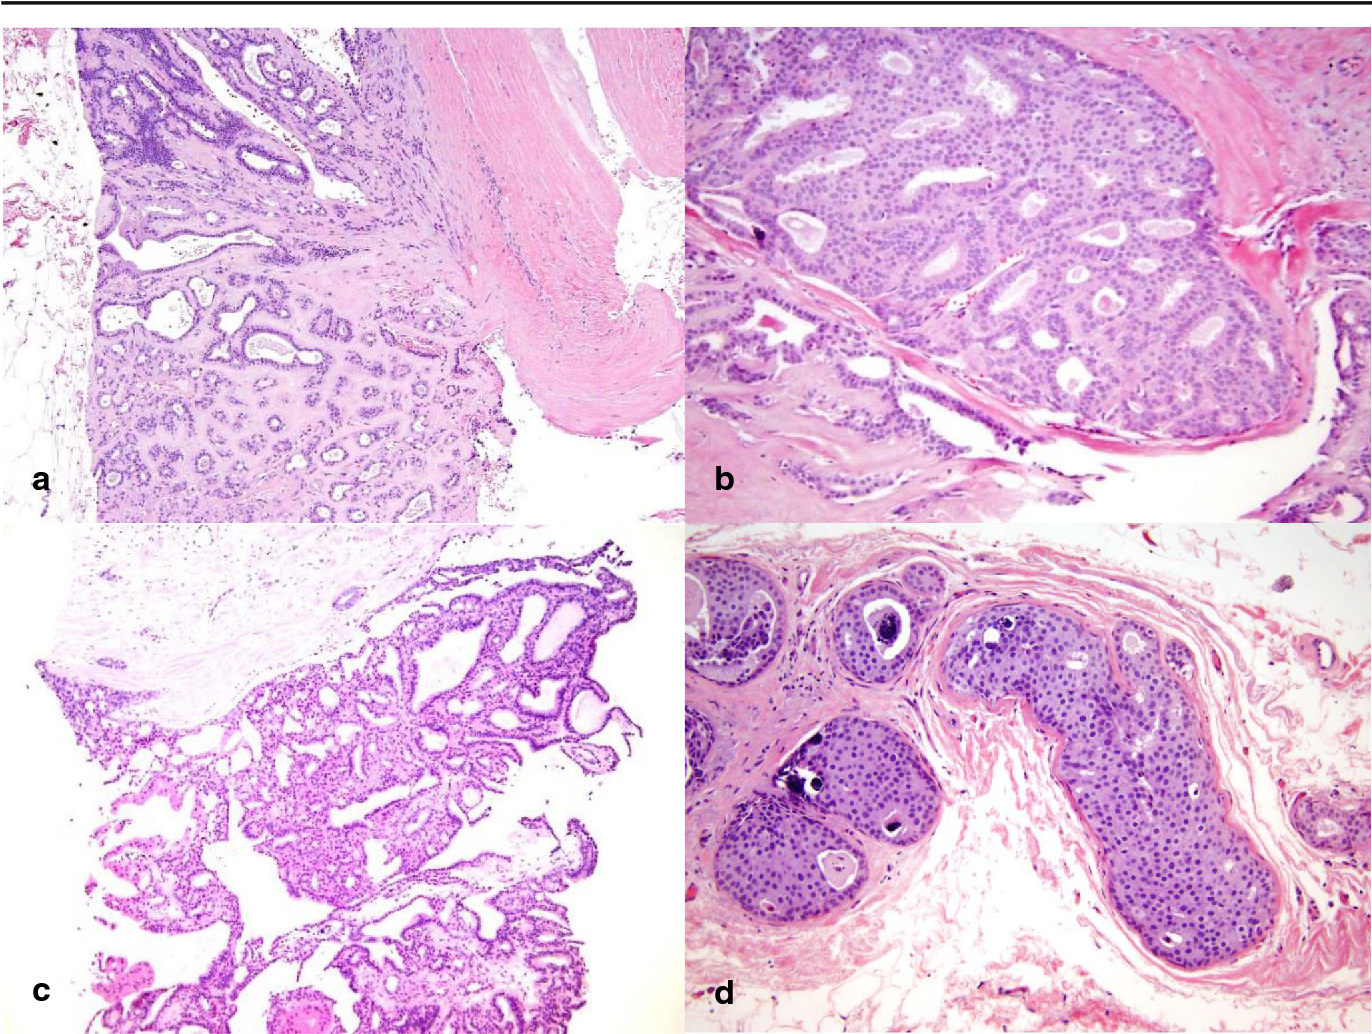 Breast Pathology, Diagnosis by Needle Core Biopsy - primariabeuca.ro